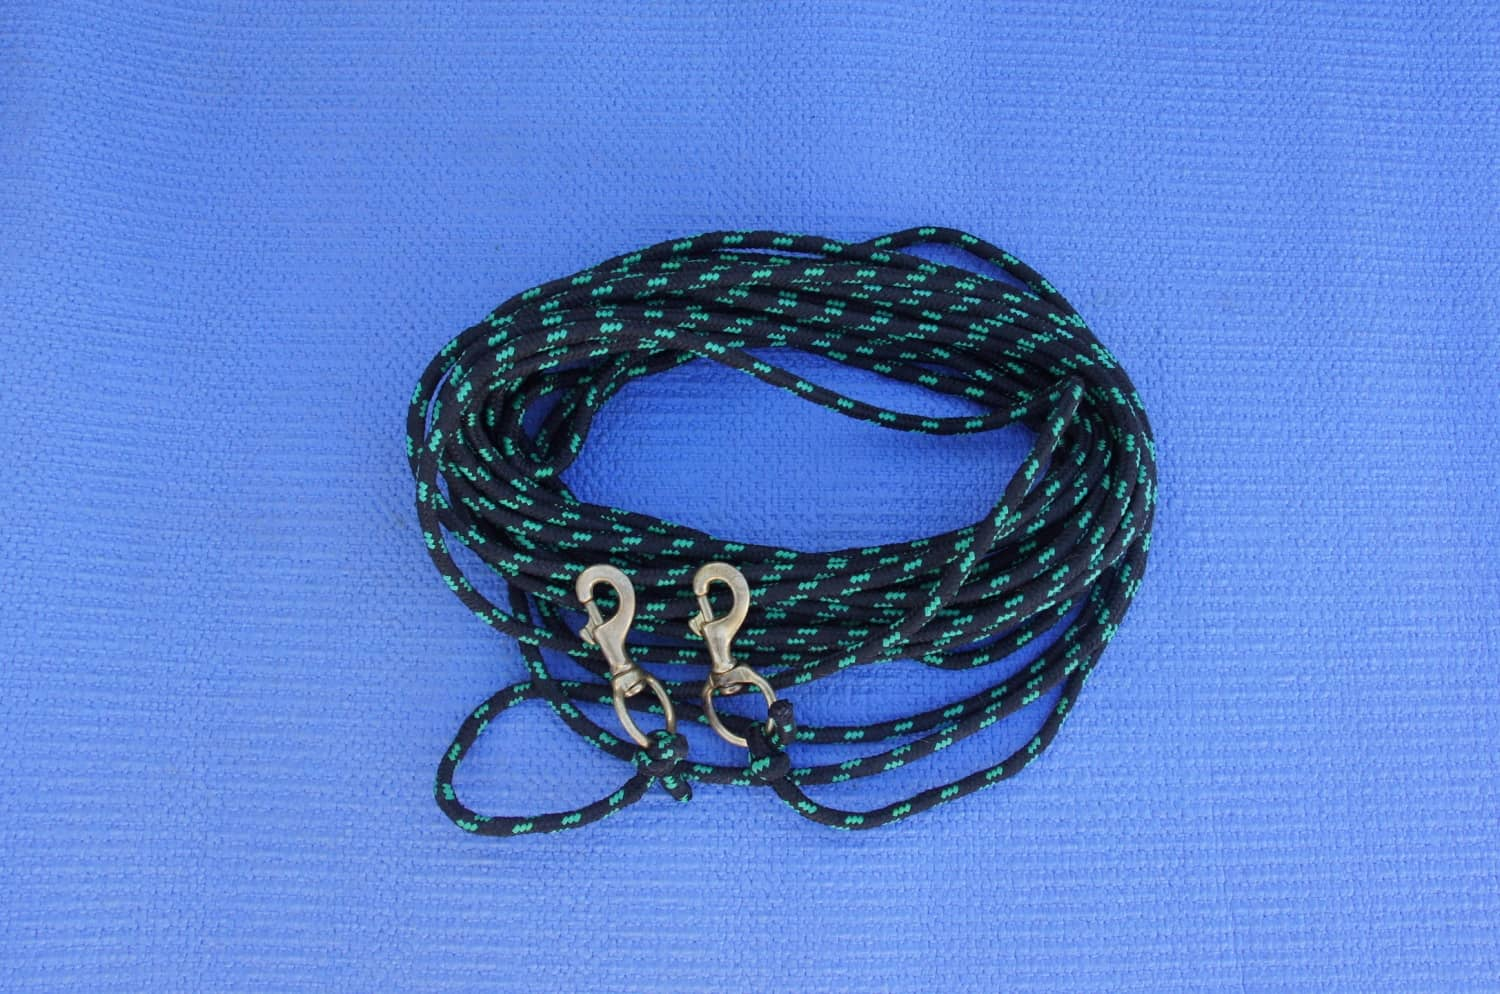 Coiled rope with snap clips attached to each end